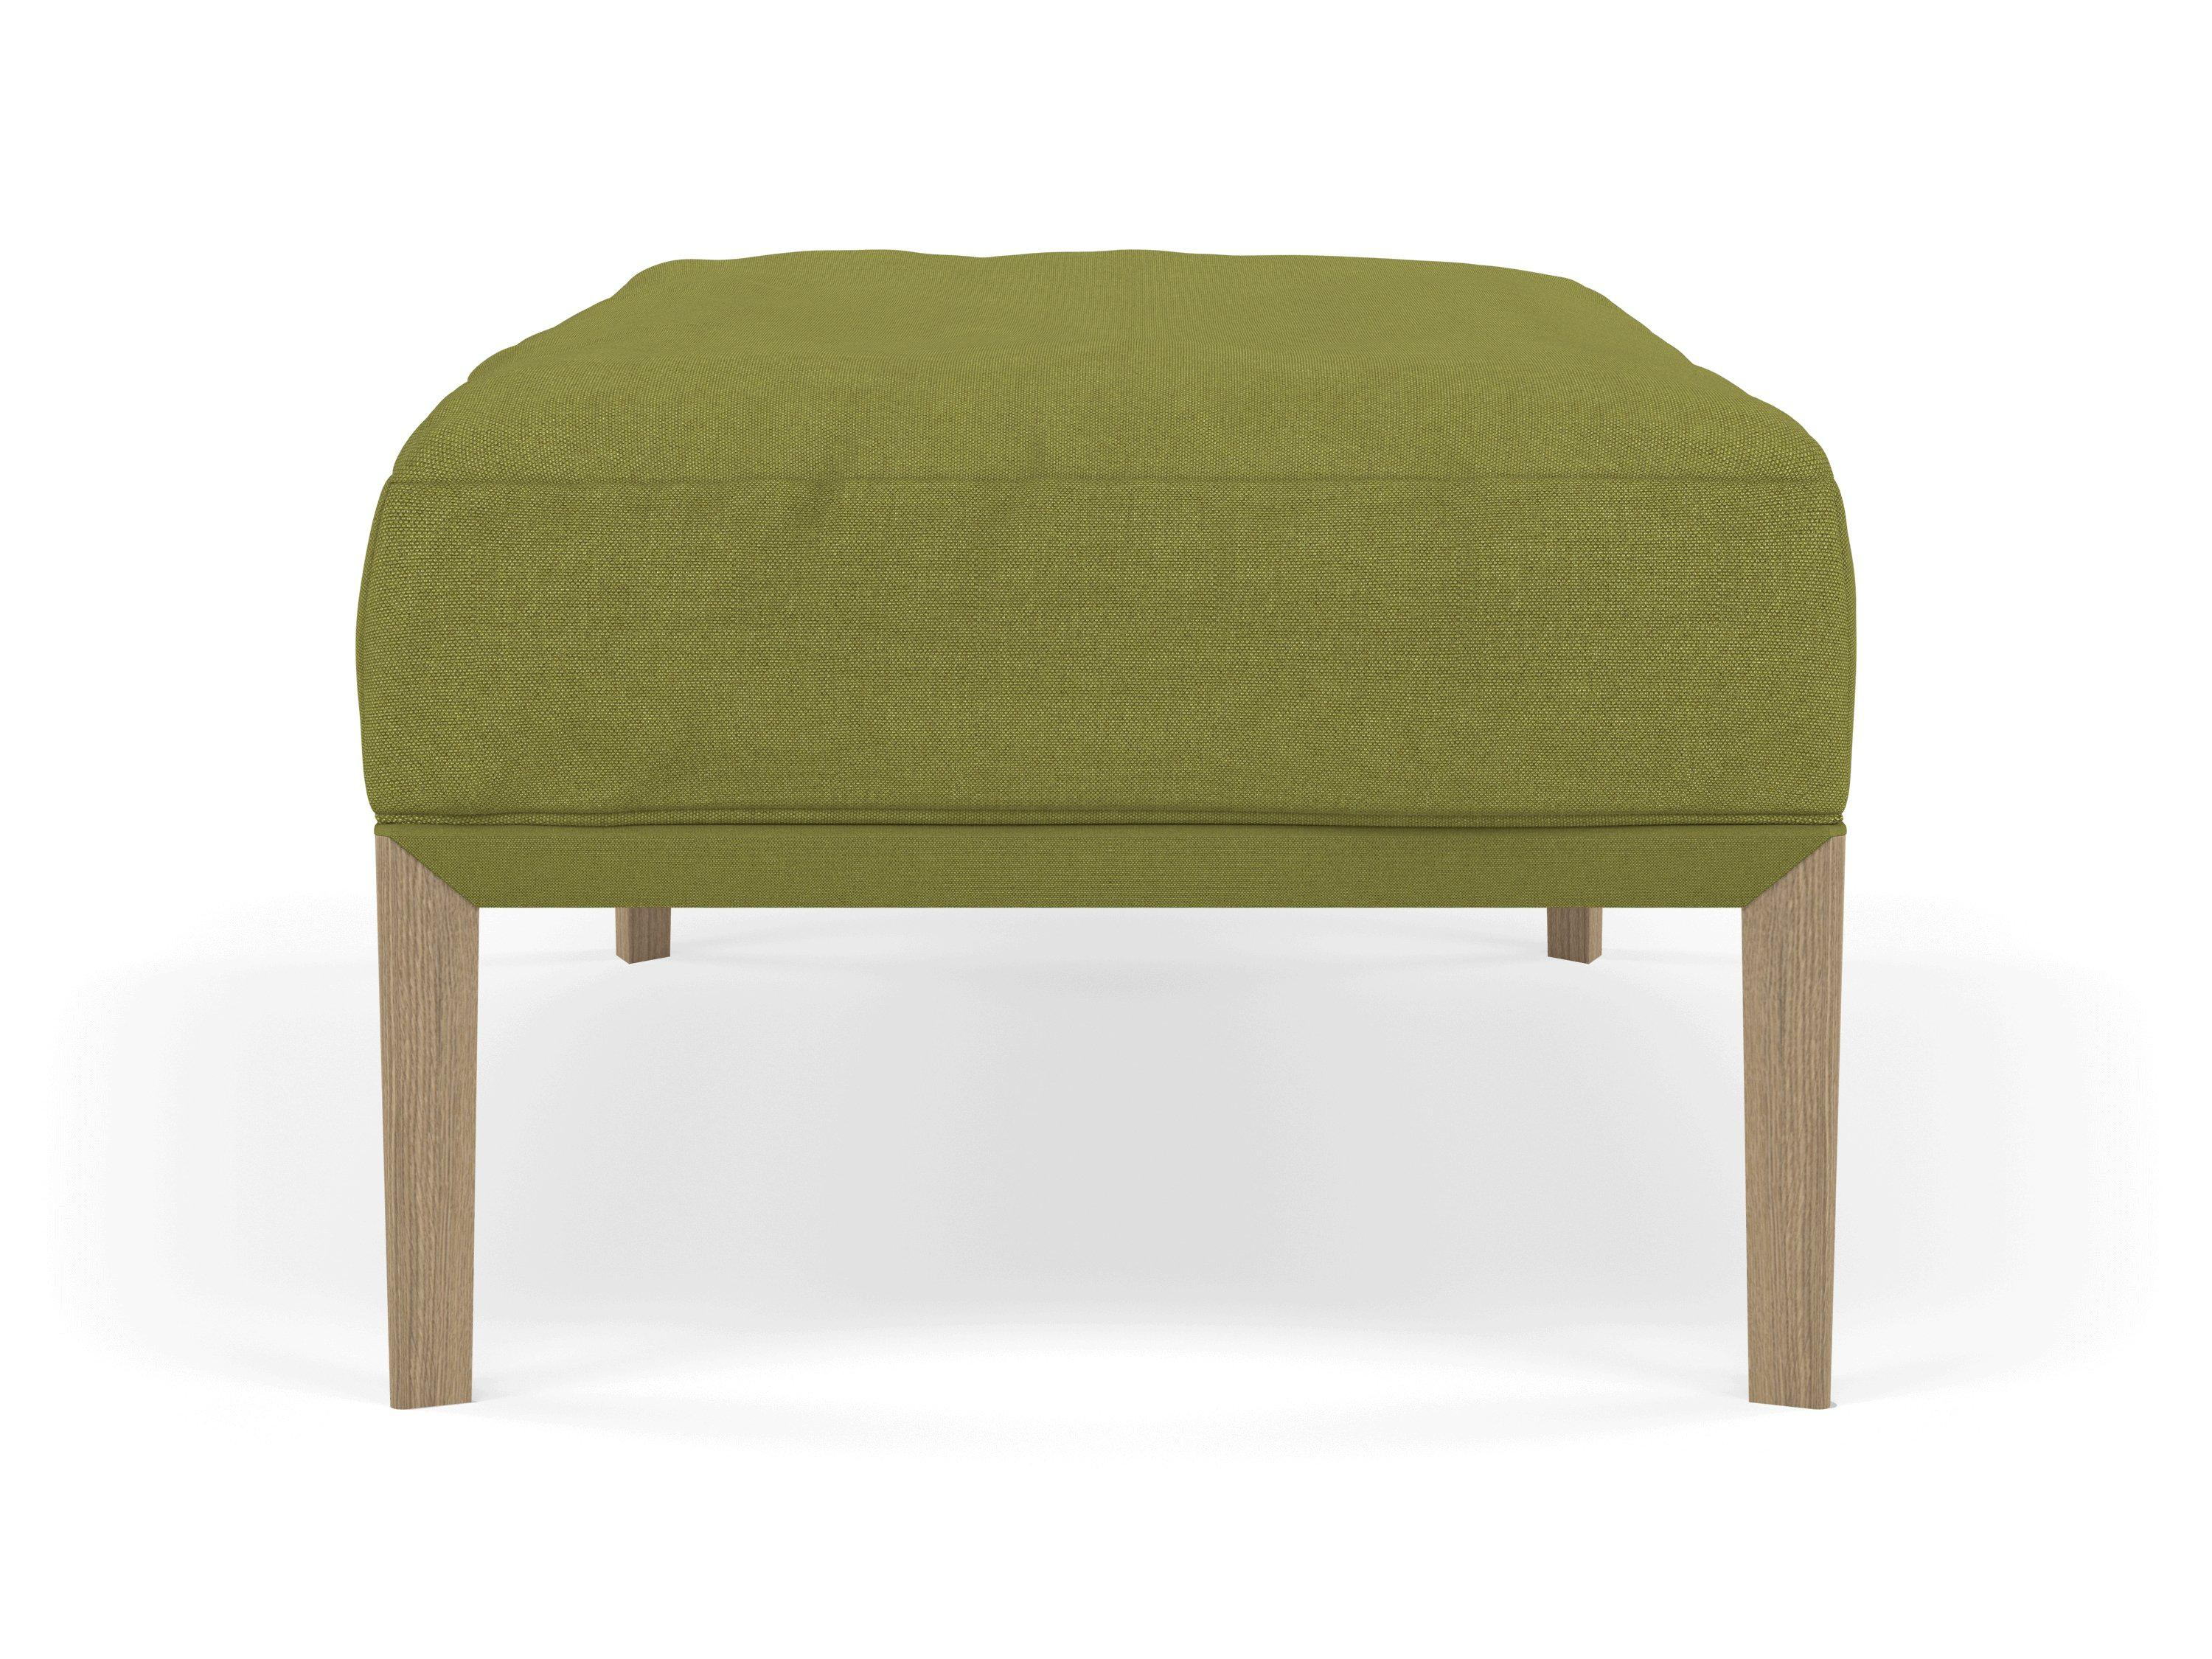 Modern Pouffe Footstool Ottoman Rectangular Seat 103X65Cm In Lime Green